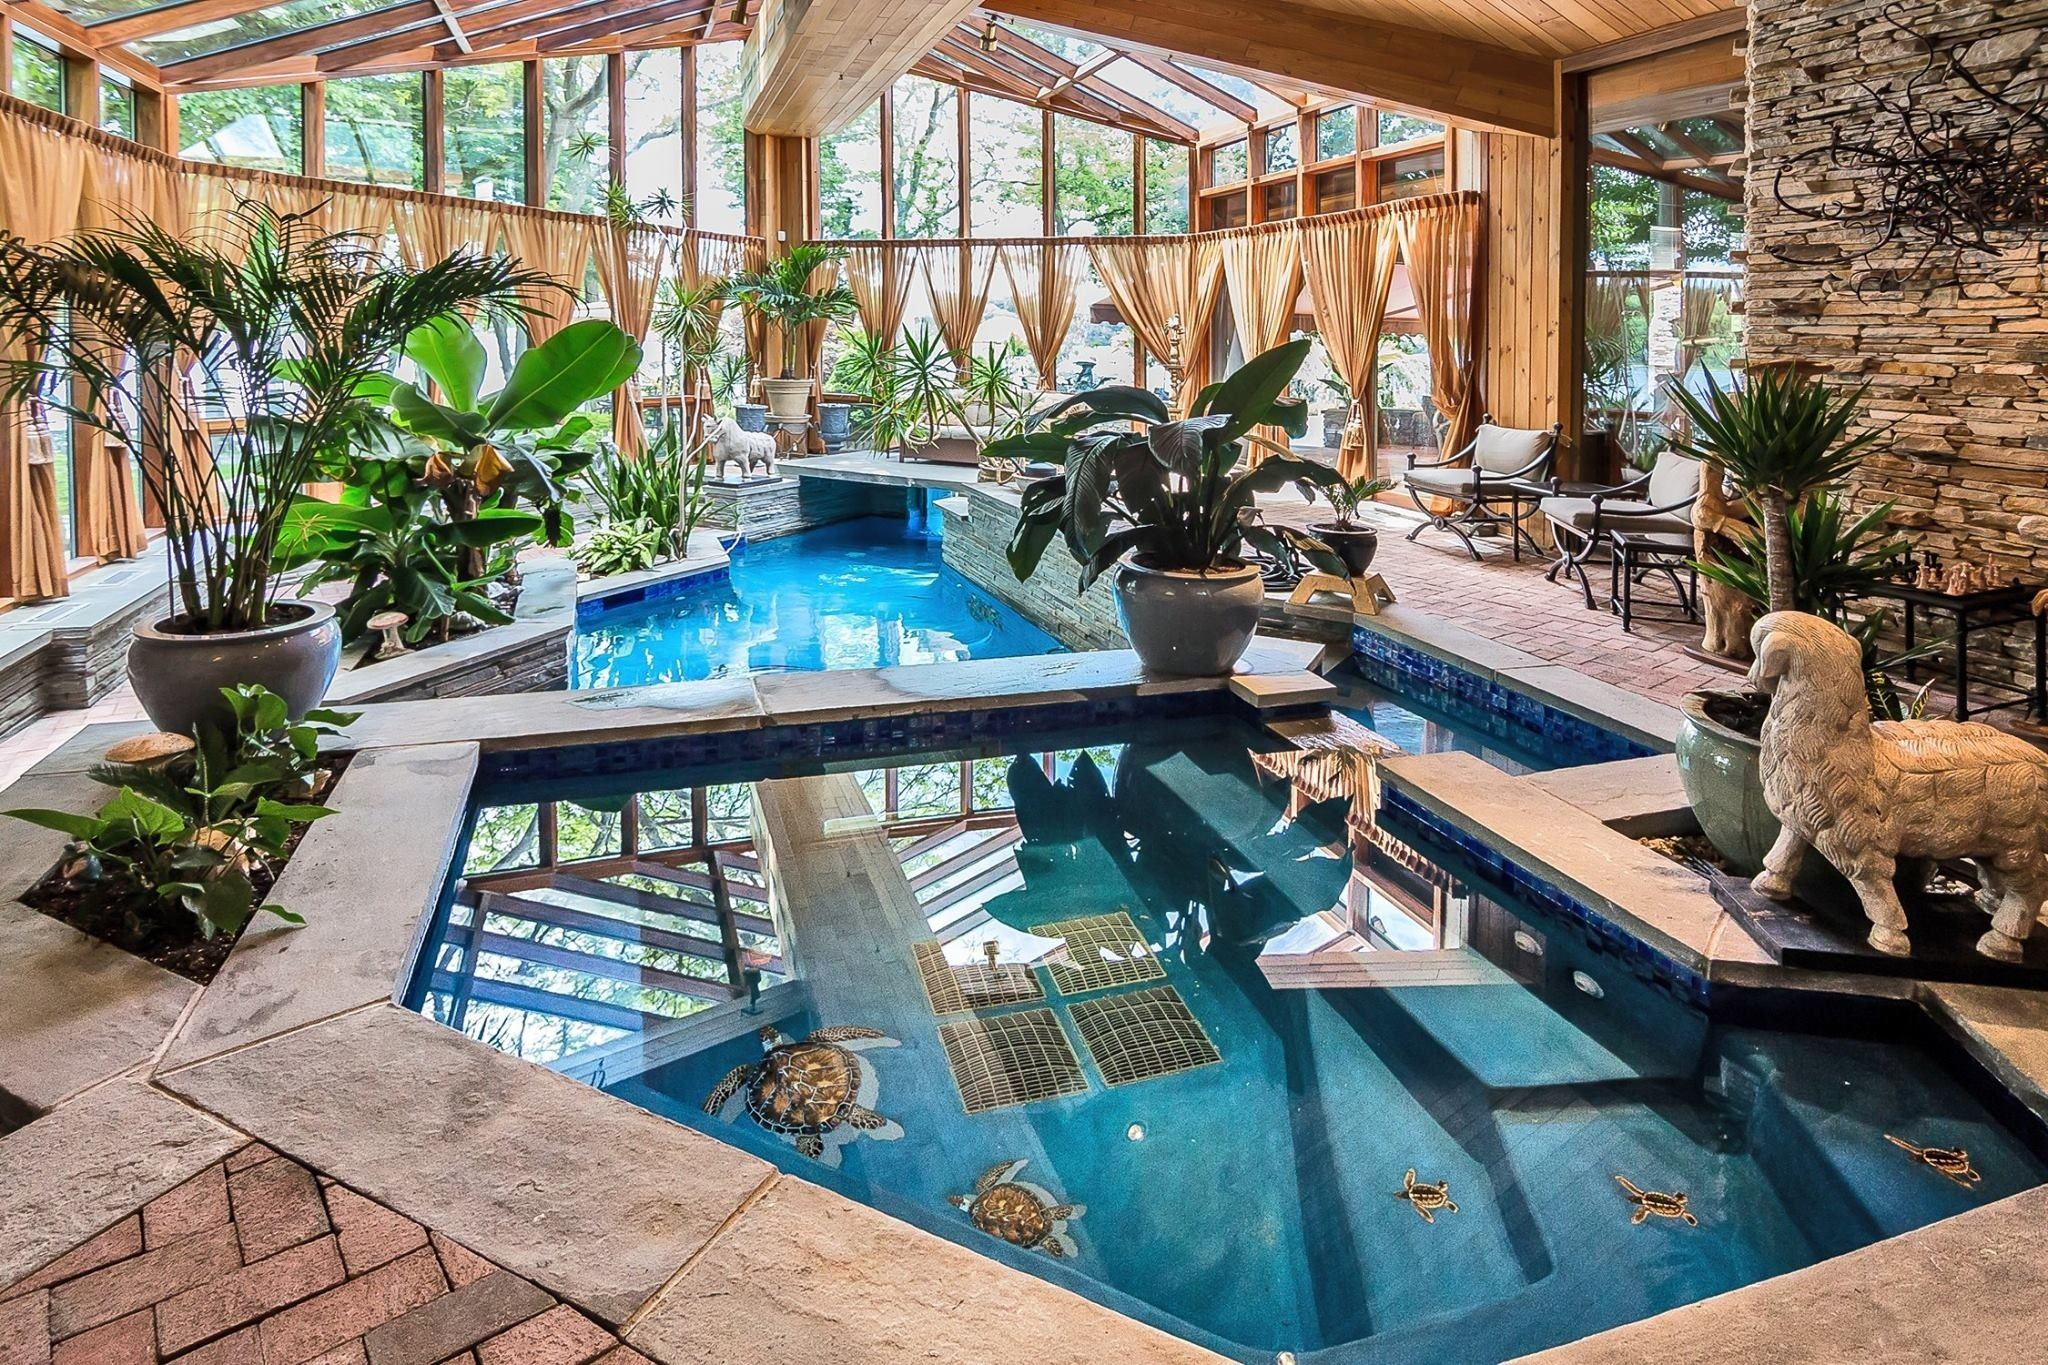 10 OF THE MOST AMAZING INDOOR SWIMMING POOLS | Dream Home ...